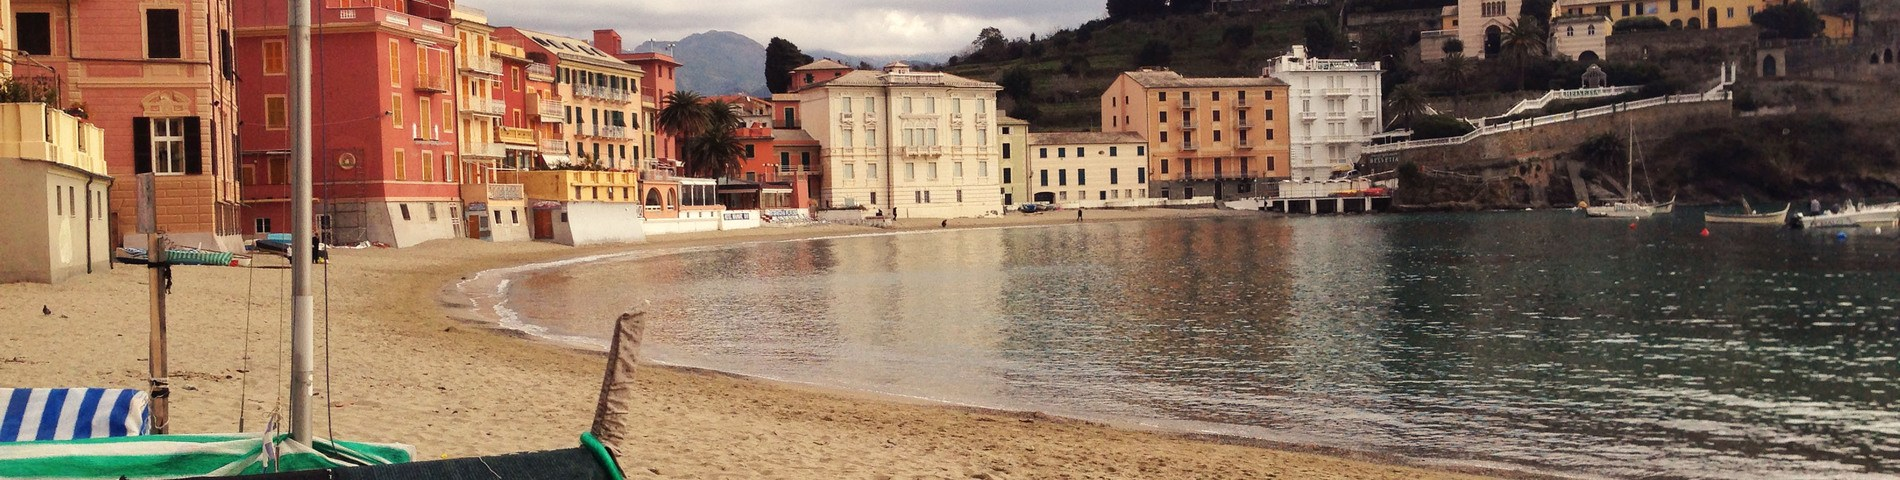 ABC Sestri Levante picture 21